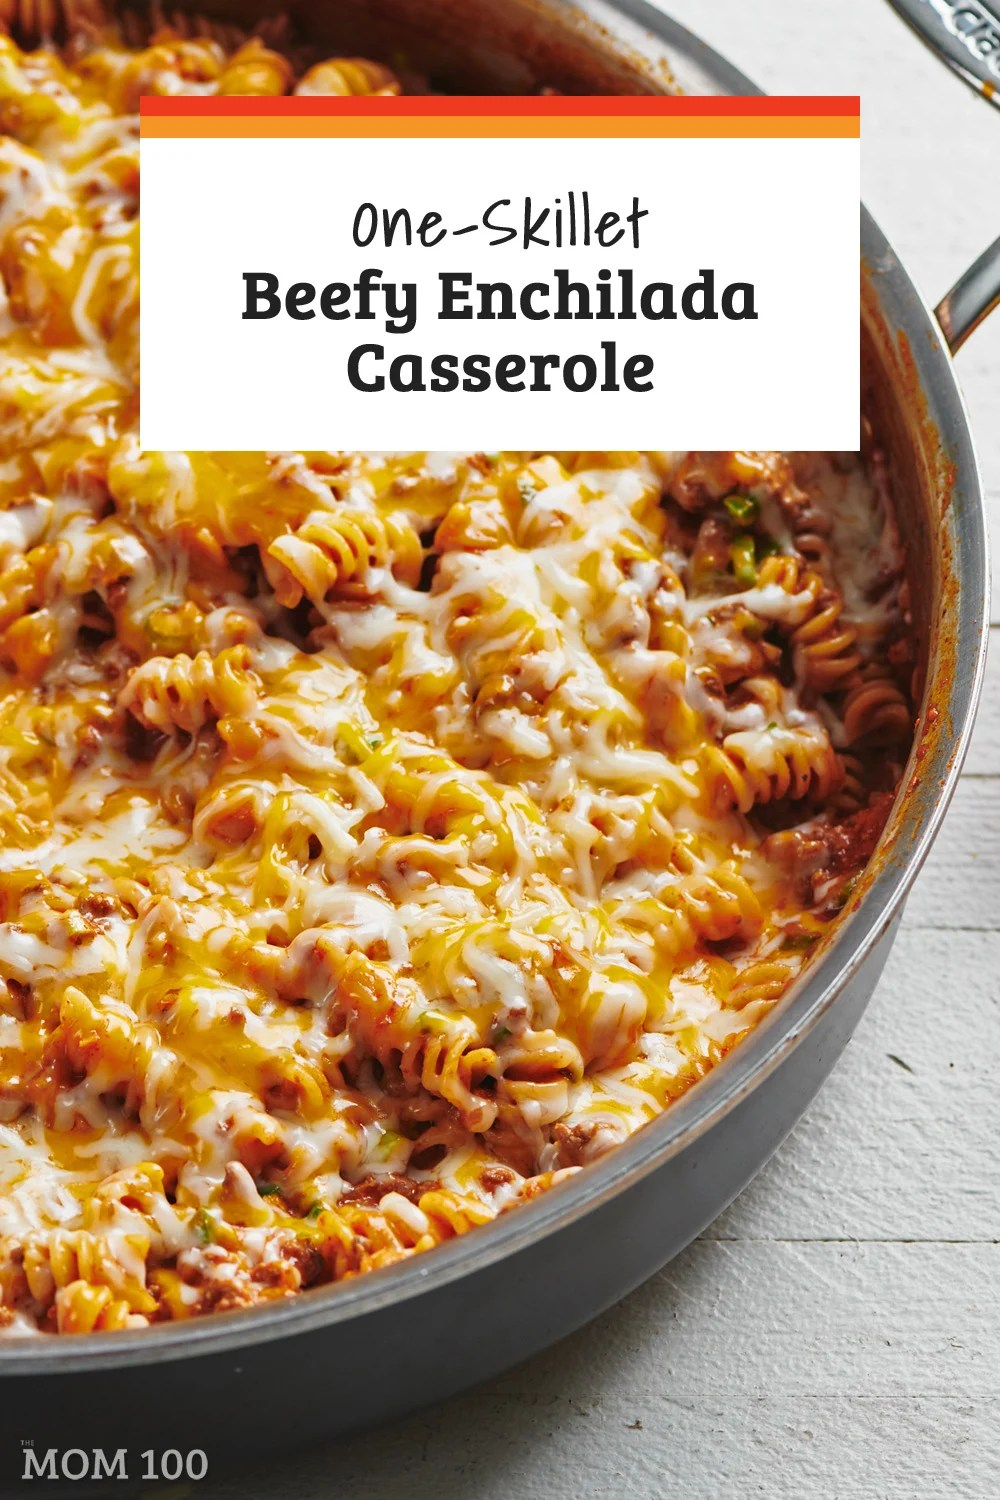 One-Skillet Beefy Enchilada Casserole: A satisfying one dish cheesy, beefy pasta recipe that hits all of those delicious flavor notes of enchiladas! #dinner #pasta #oneskillet #onepot